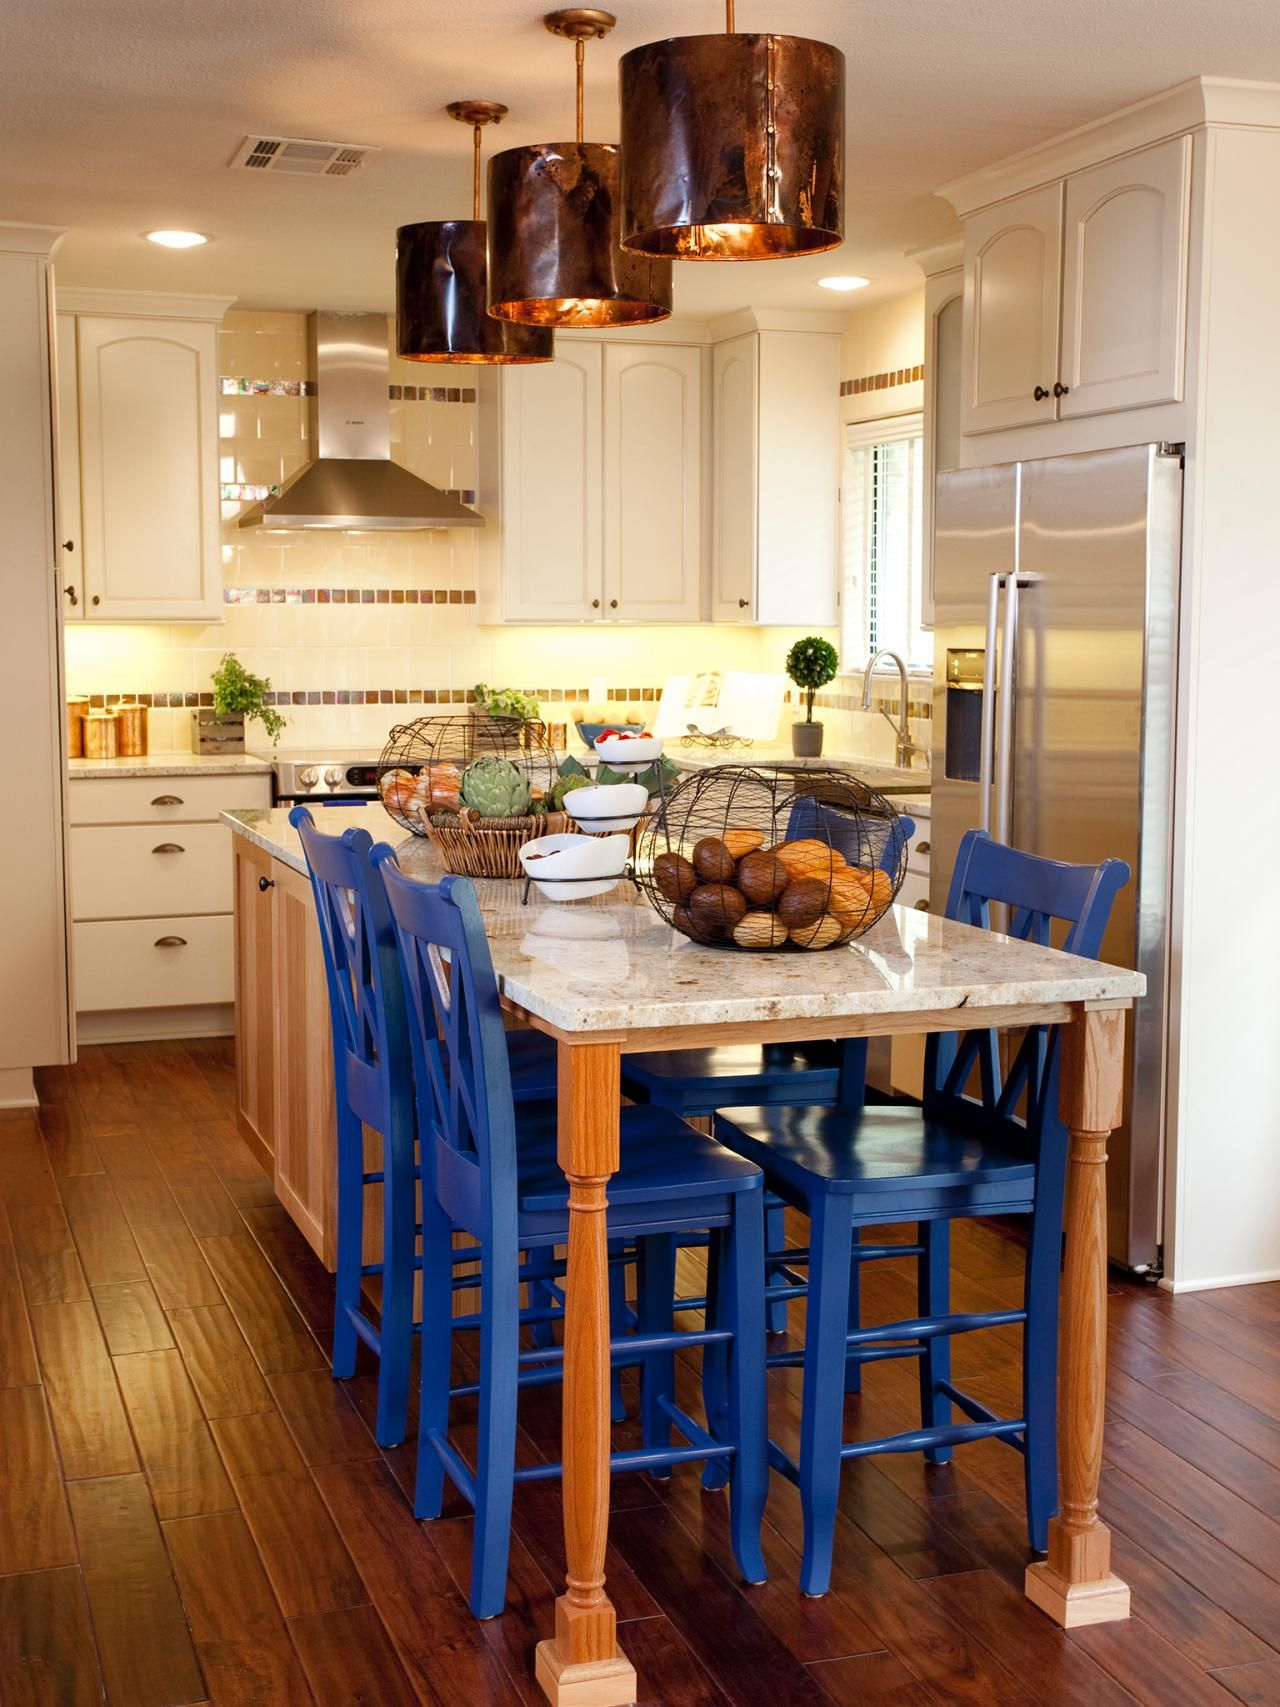 Kitchen Island Table Ideas And Options Hgtv Pictures Small Kitchens Cabinets And Kitchen